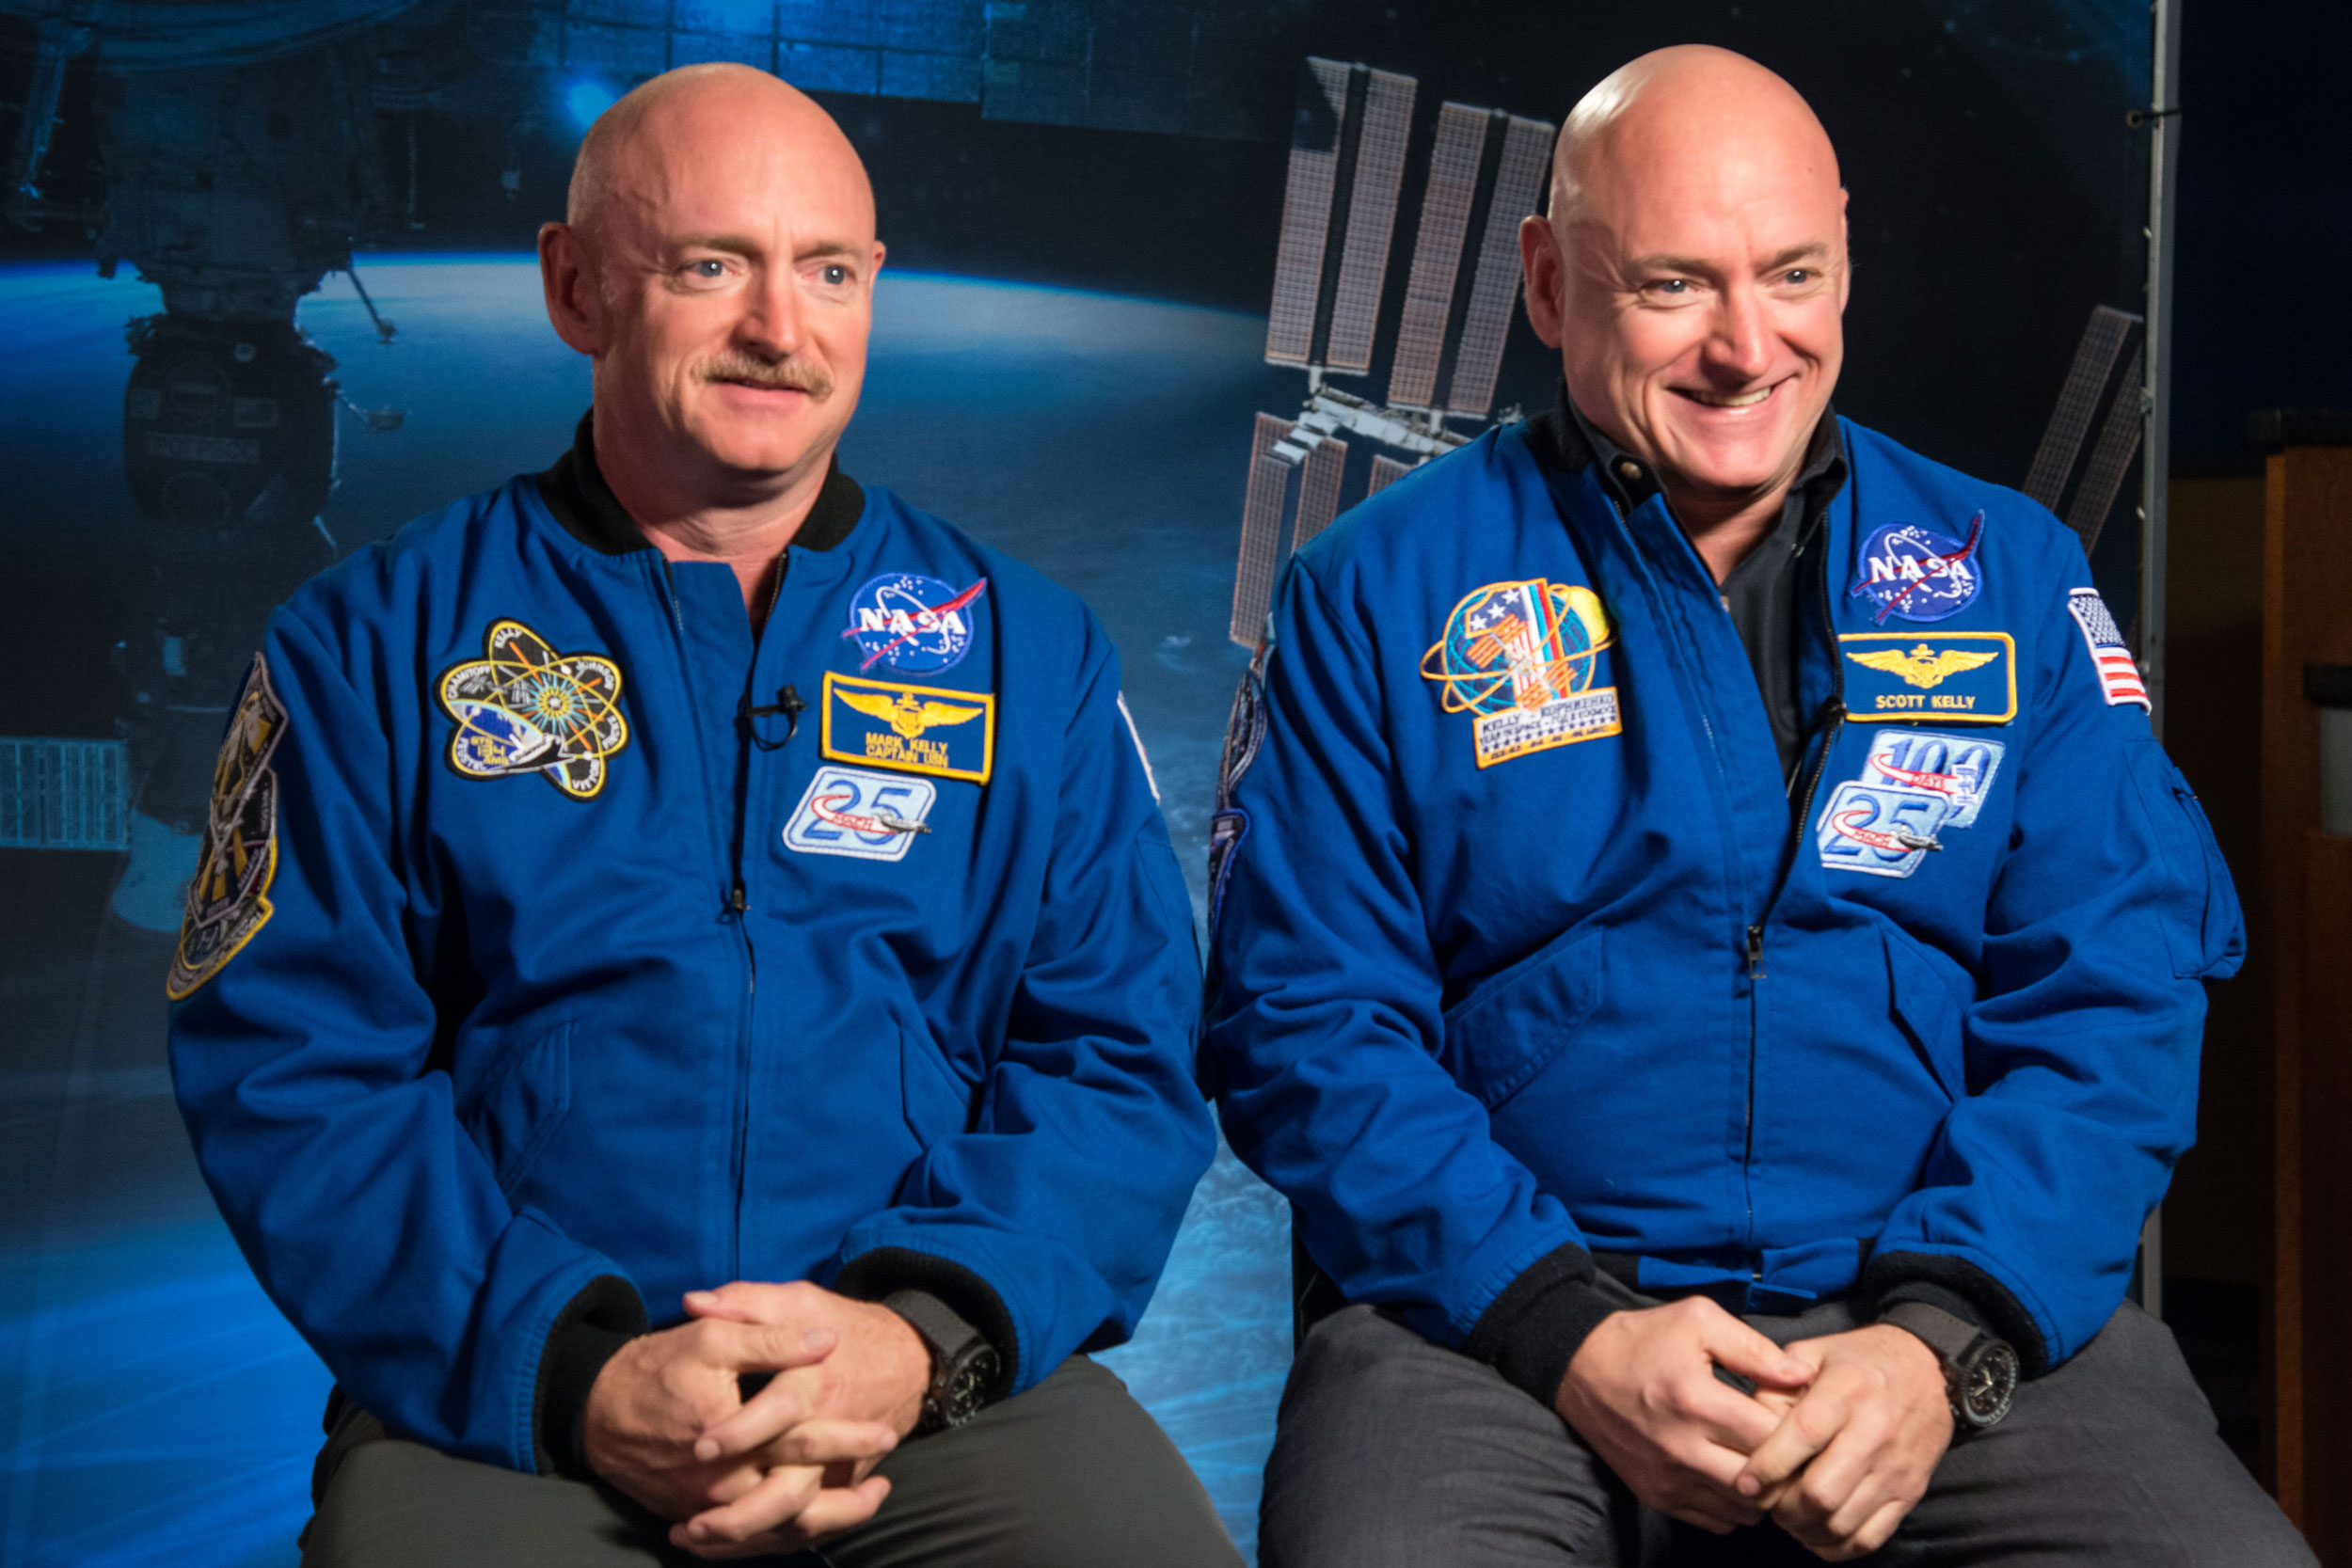 Identical twin astronauts Scott and Mark Kelly are subjects of a NASA study. Scott, right, spent a year in space, while Mark, left, stayed on Earth. Researchers looked at the effects of space travel on the human body. (Photo courtesy of NASA)